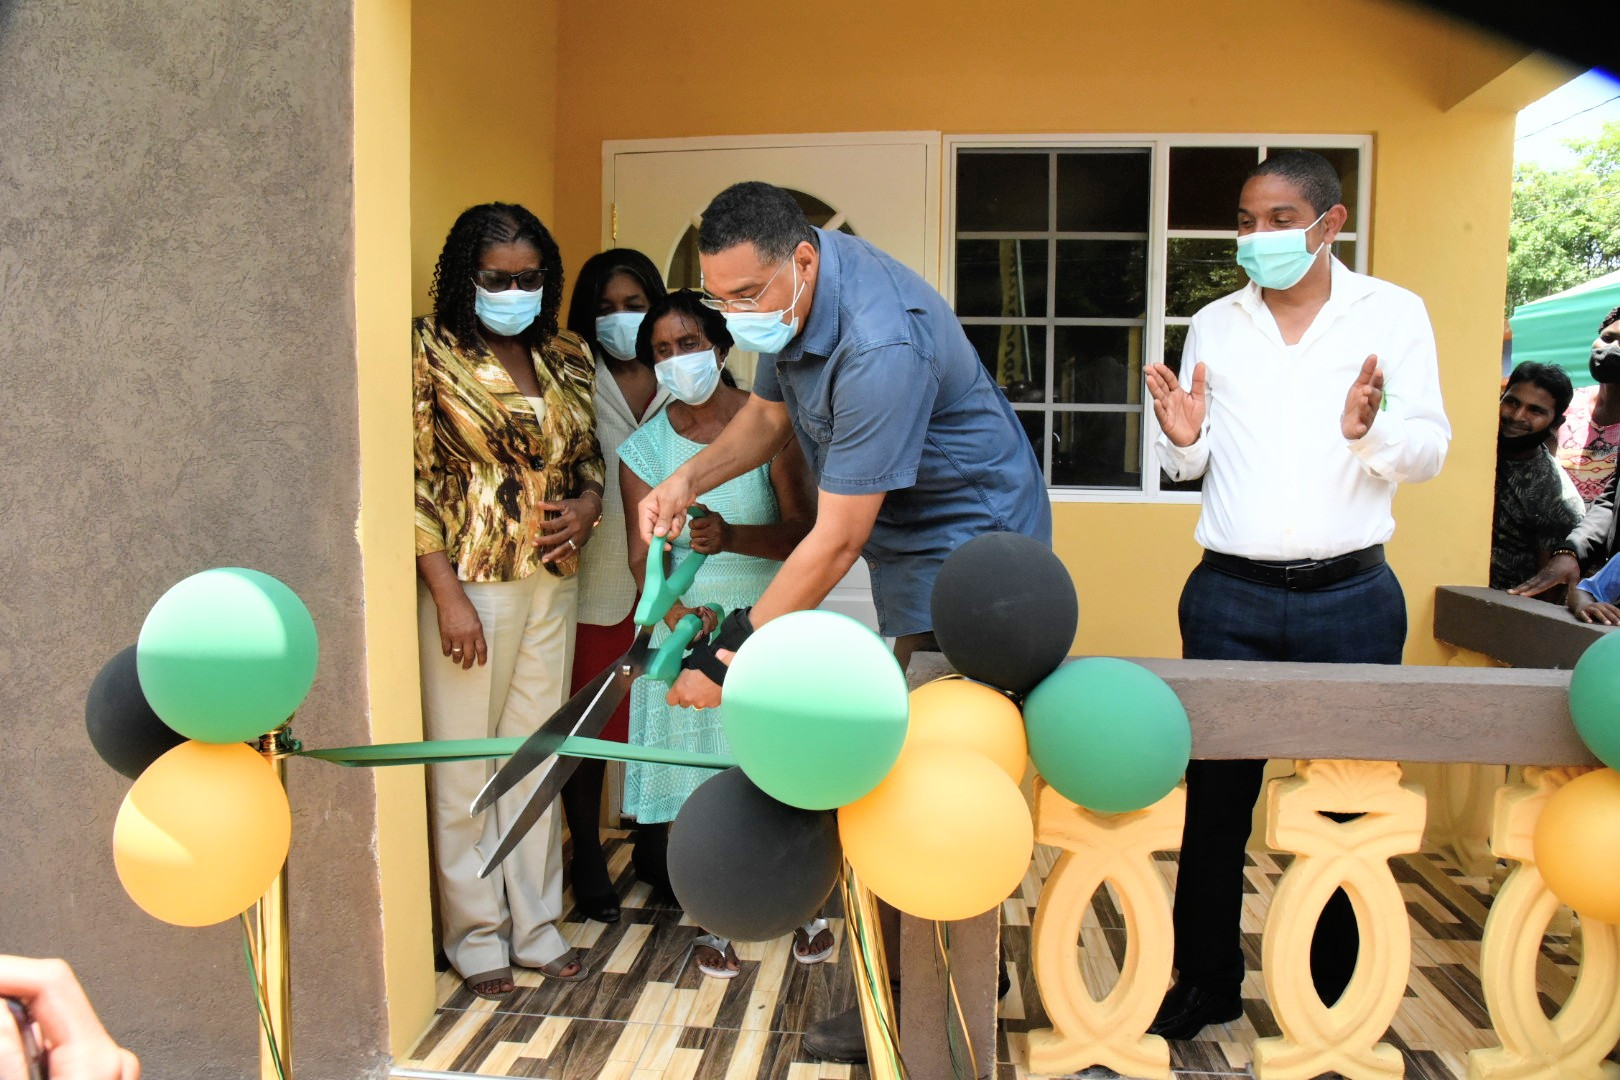 PM Holness: $400M More for Indigent Housing